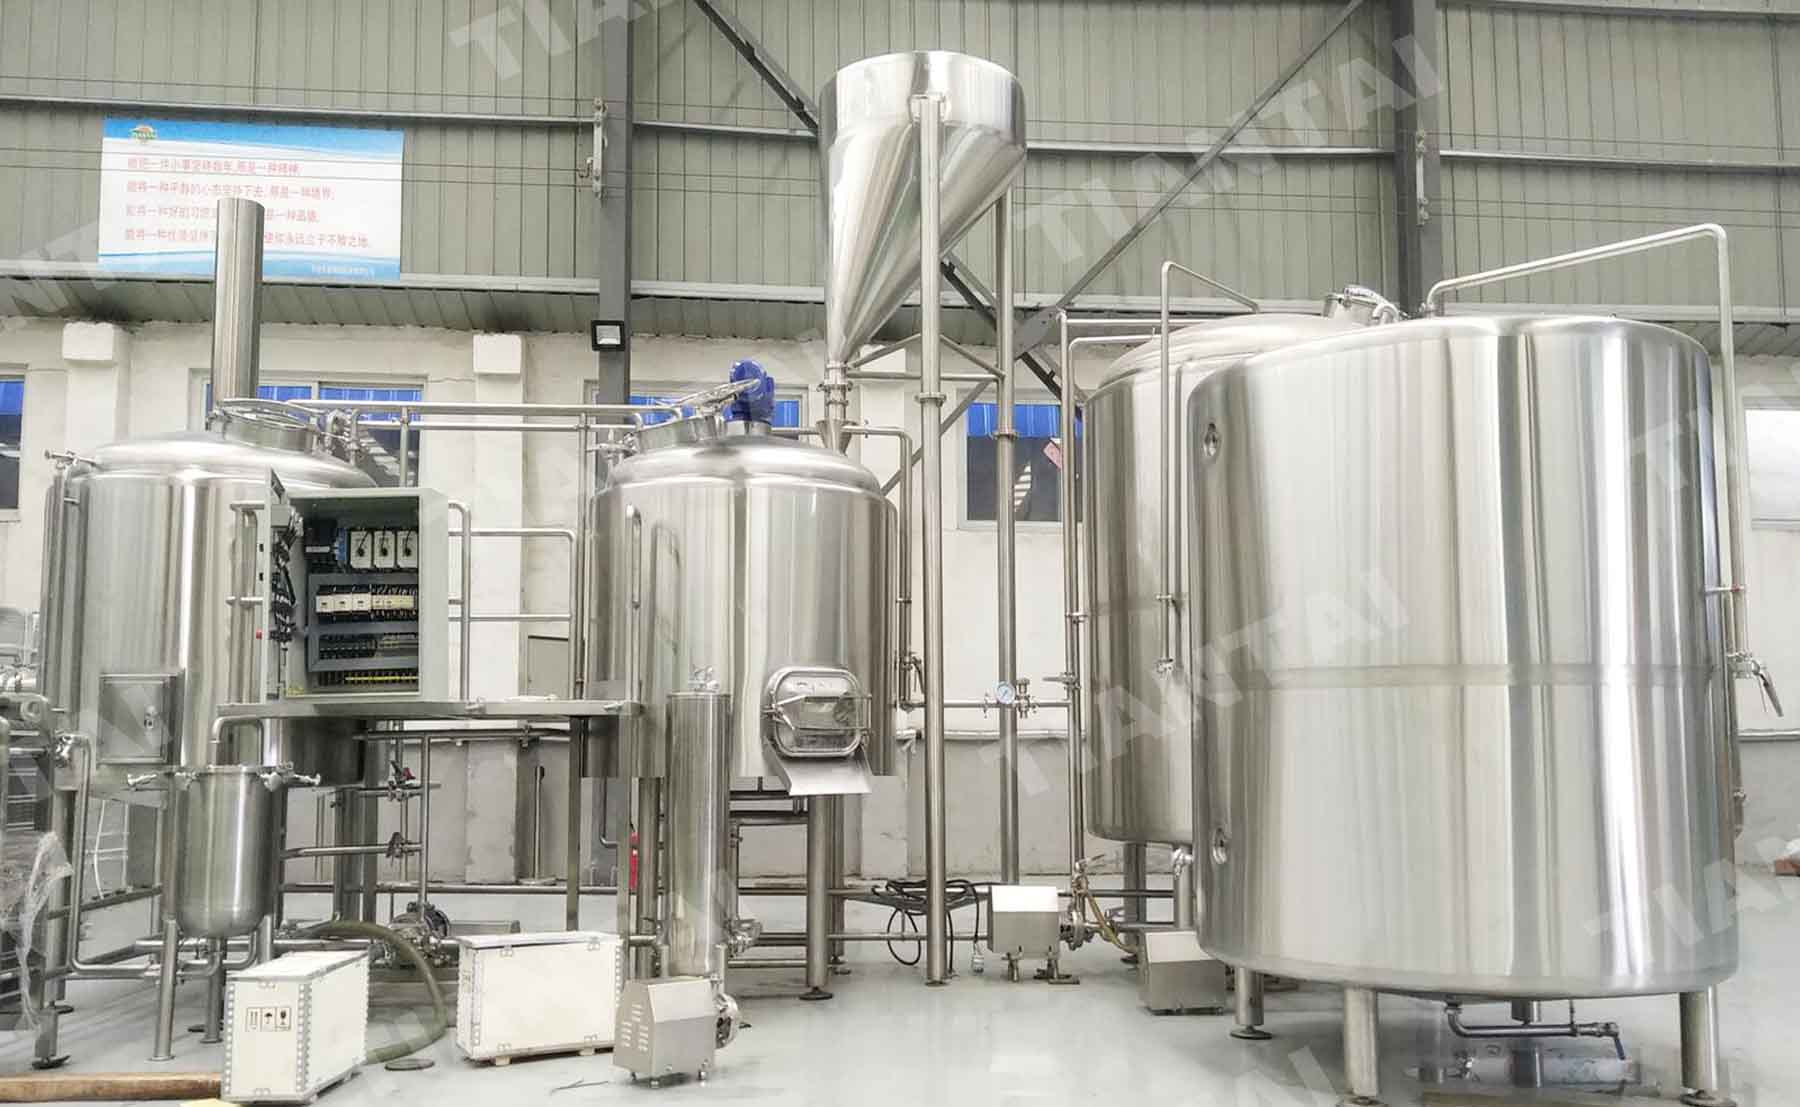 Australia 1200L Microbrewery Equipment is installed!